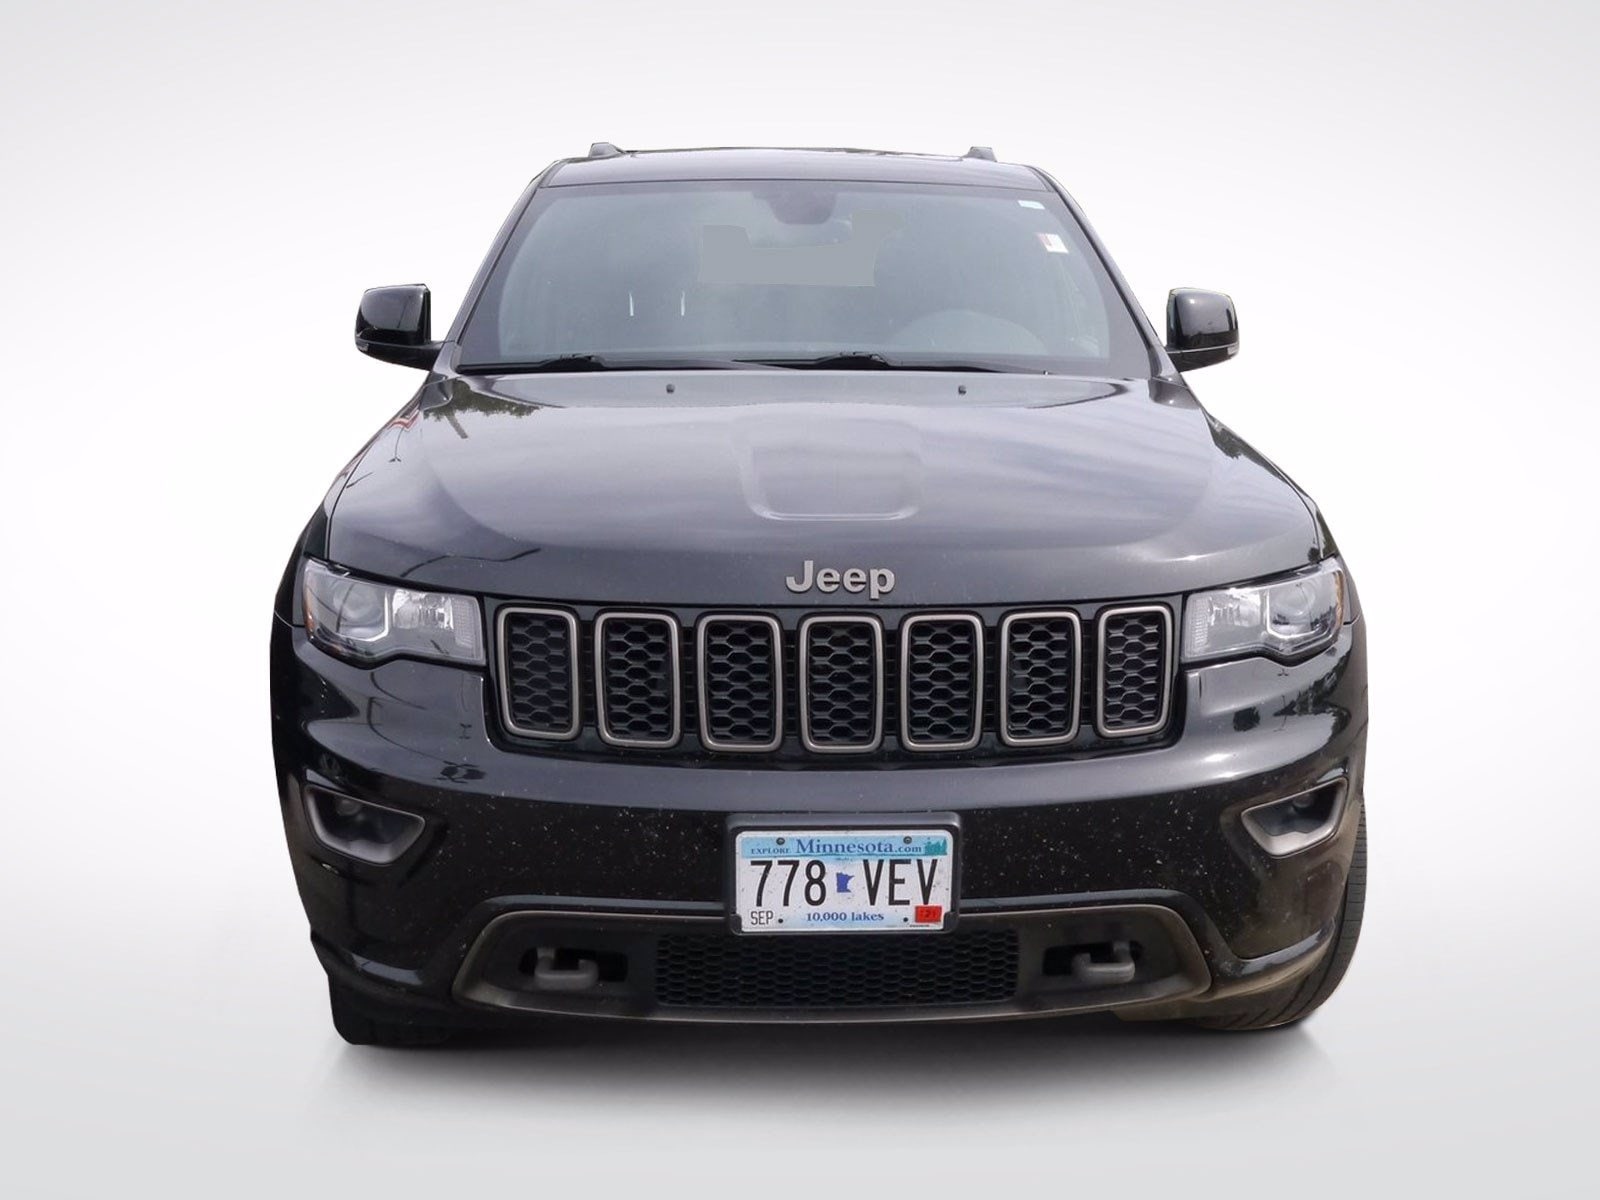 Used 2016 Jeep Grand Cherokee Limited with VIN 1C4RJFBG0GC469387 for sale in Baxter, Minnesota